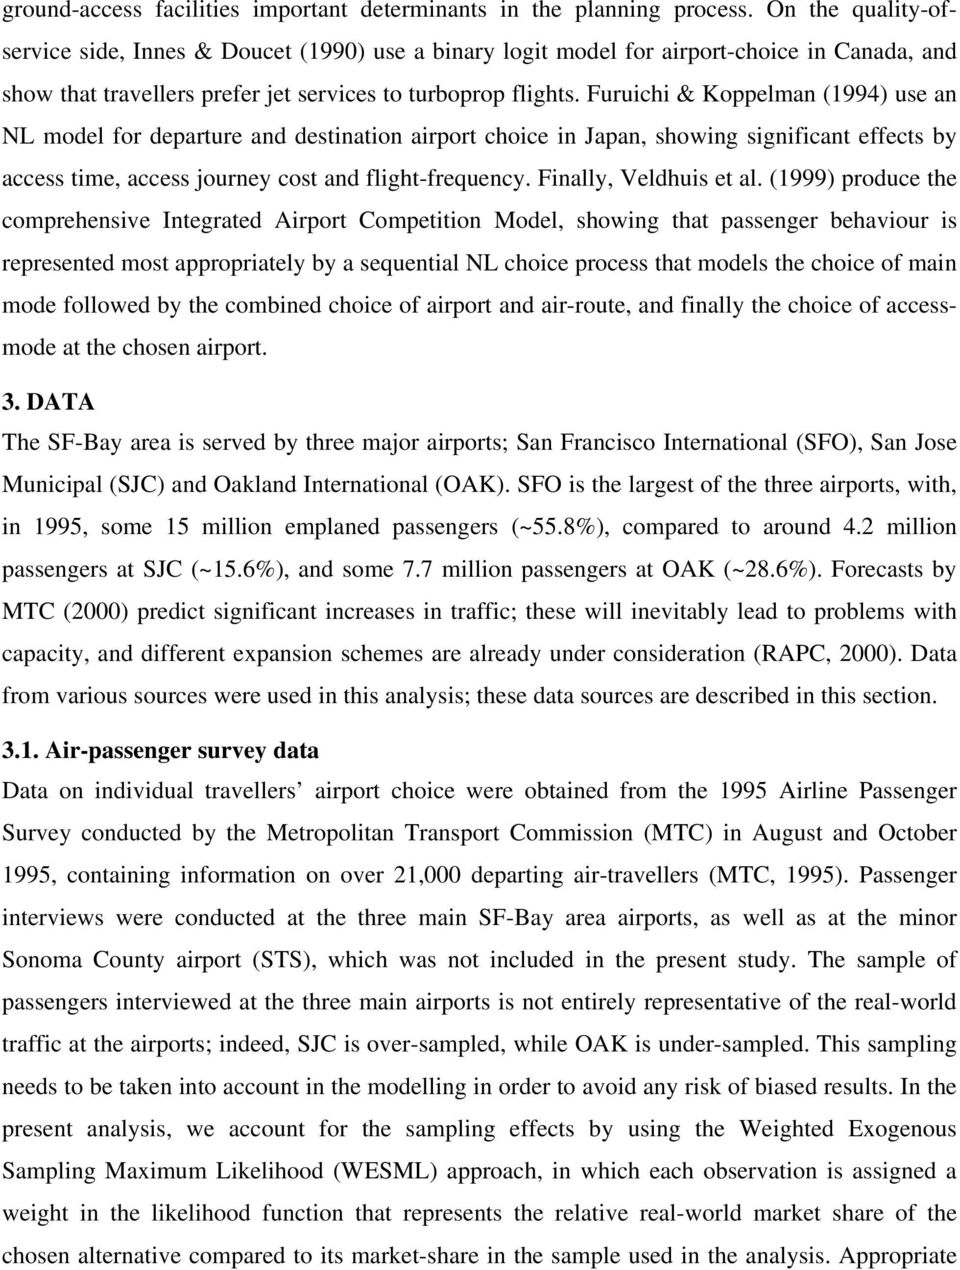 Furuichi & Koppelman (1994) use an NL model for departure and destination airport choice in Japan, showing significant effects by access time, access journey cost and flight-frequency.